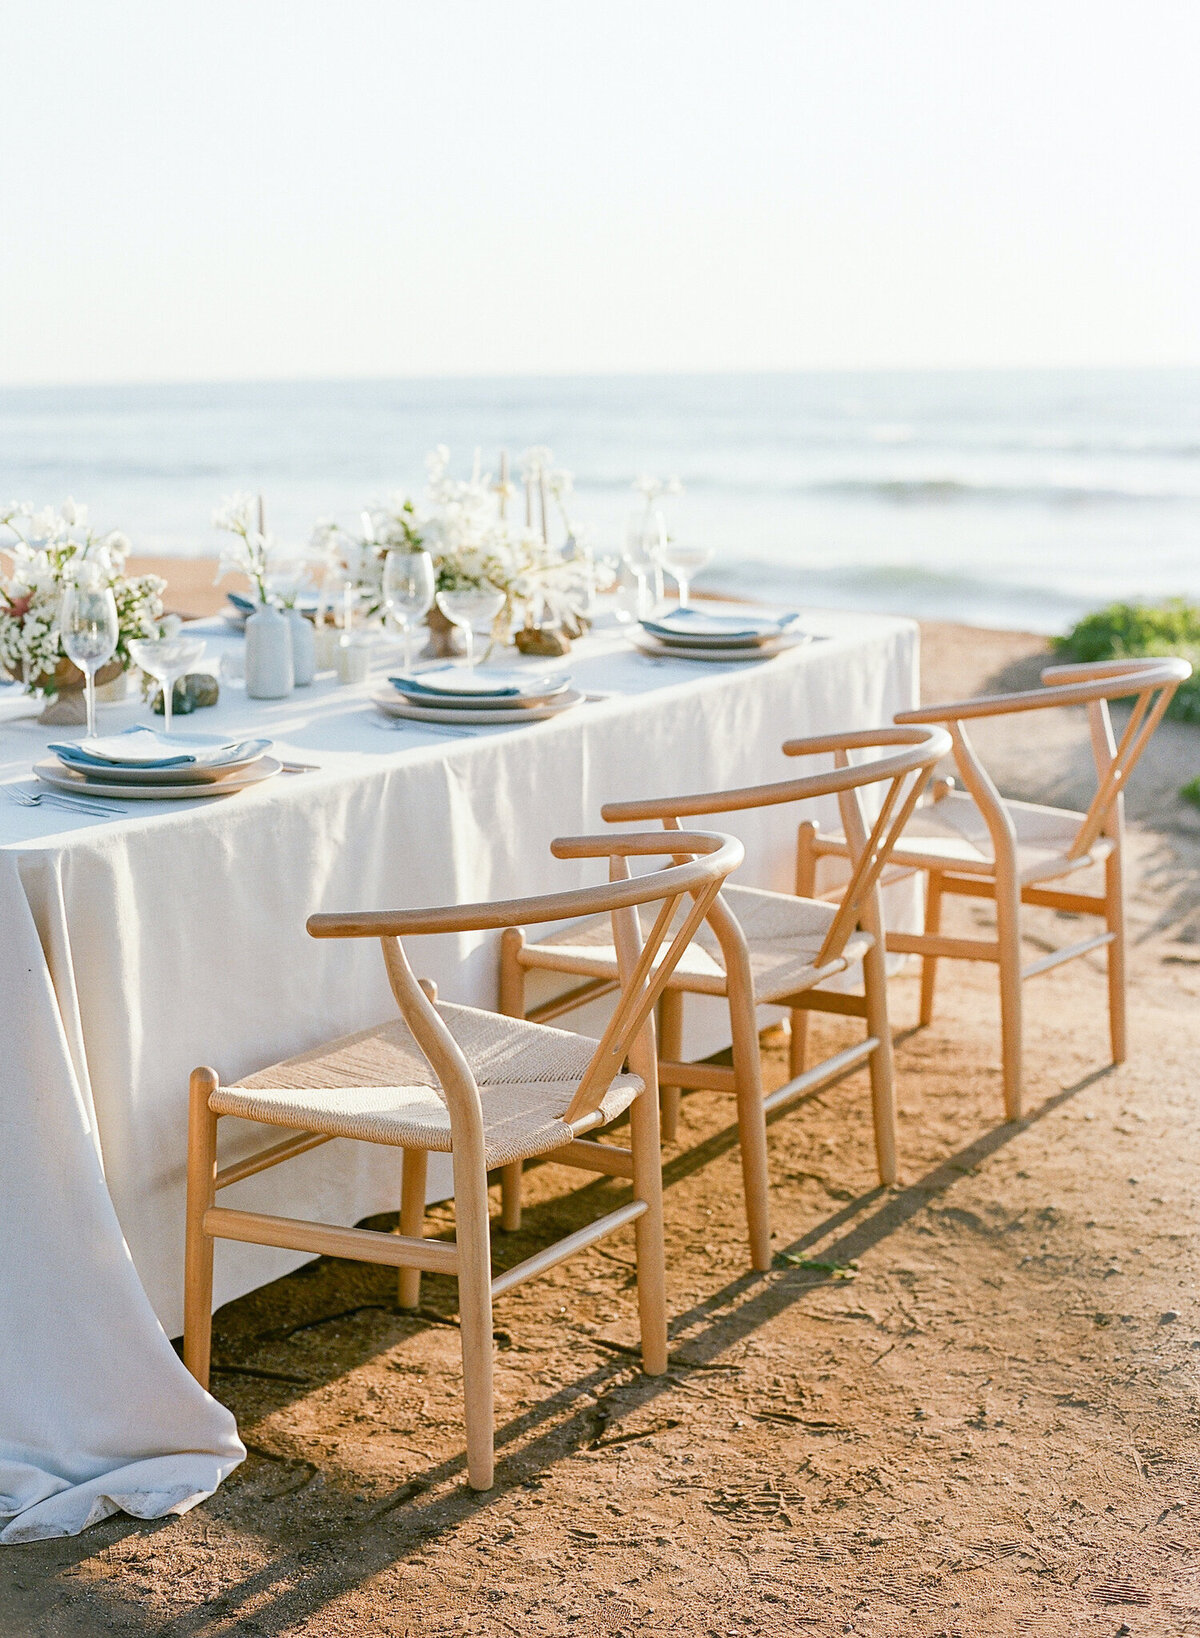 San-Diego-Coastal-Wedding-Megan-Travis-Photography-66